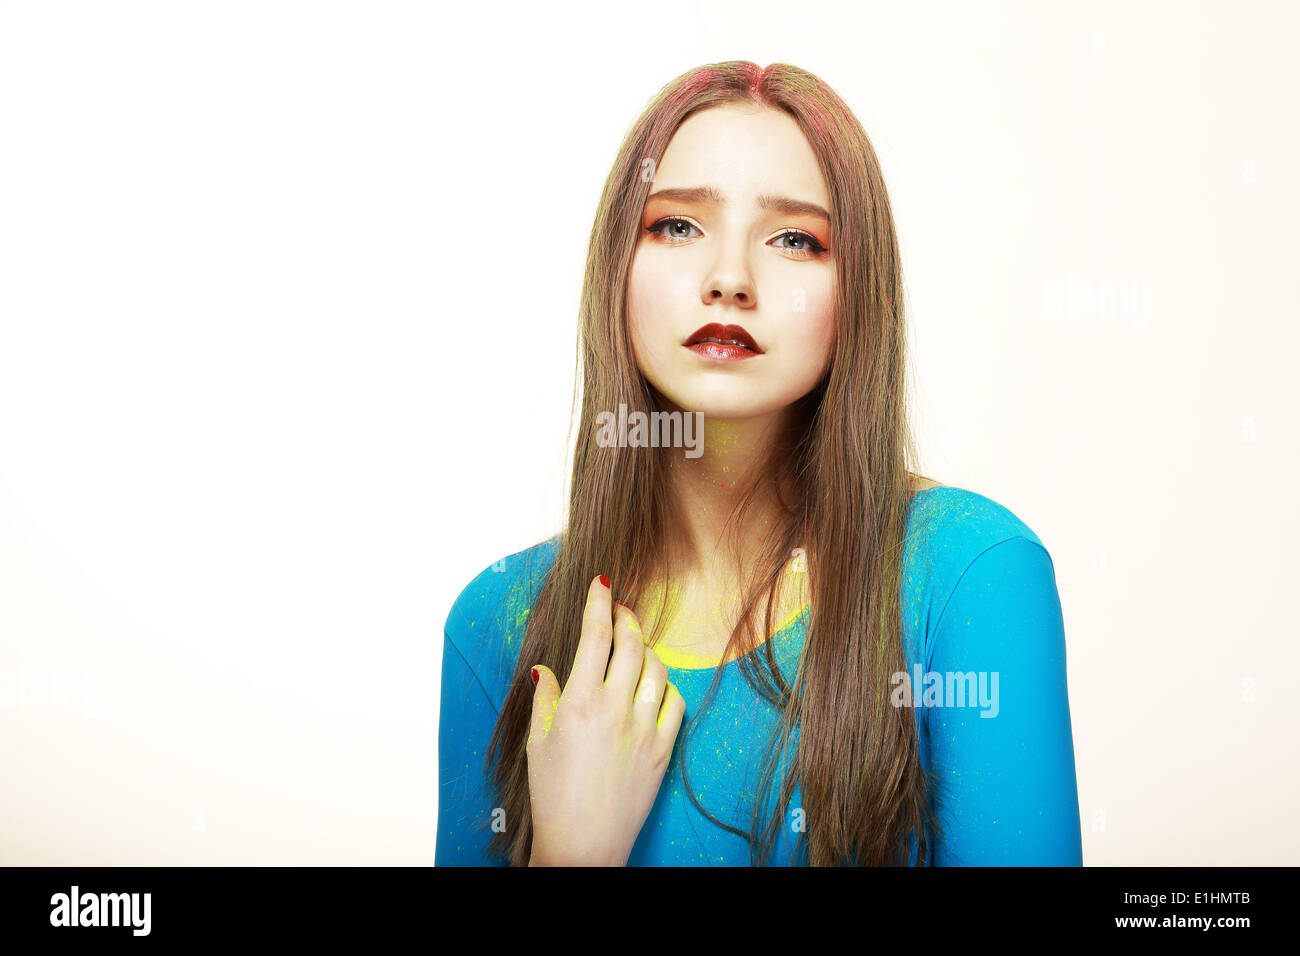 Art. Cute Woman with Modern Colorful Make-up. Fashion Style - Stock Image